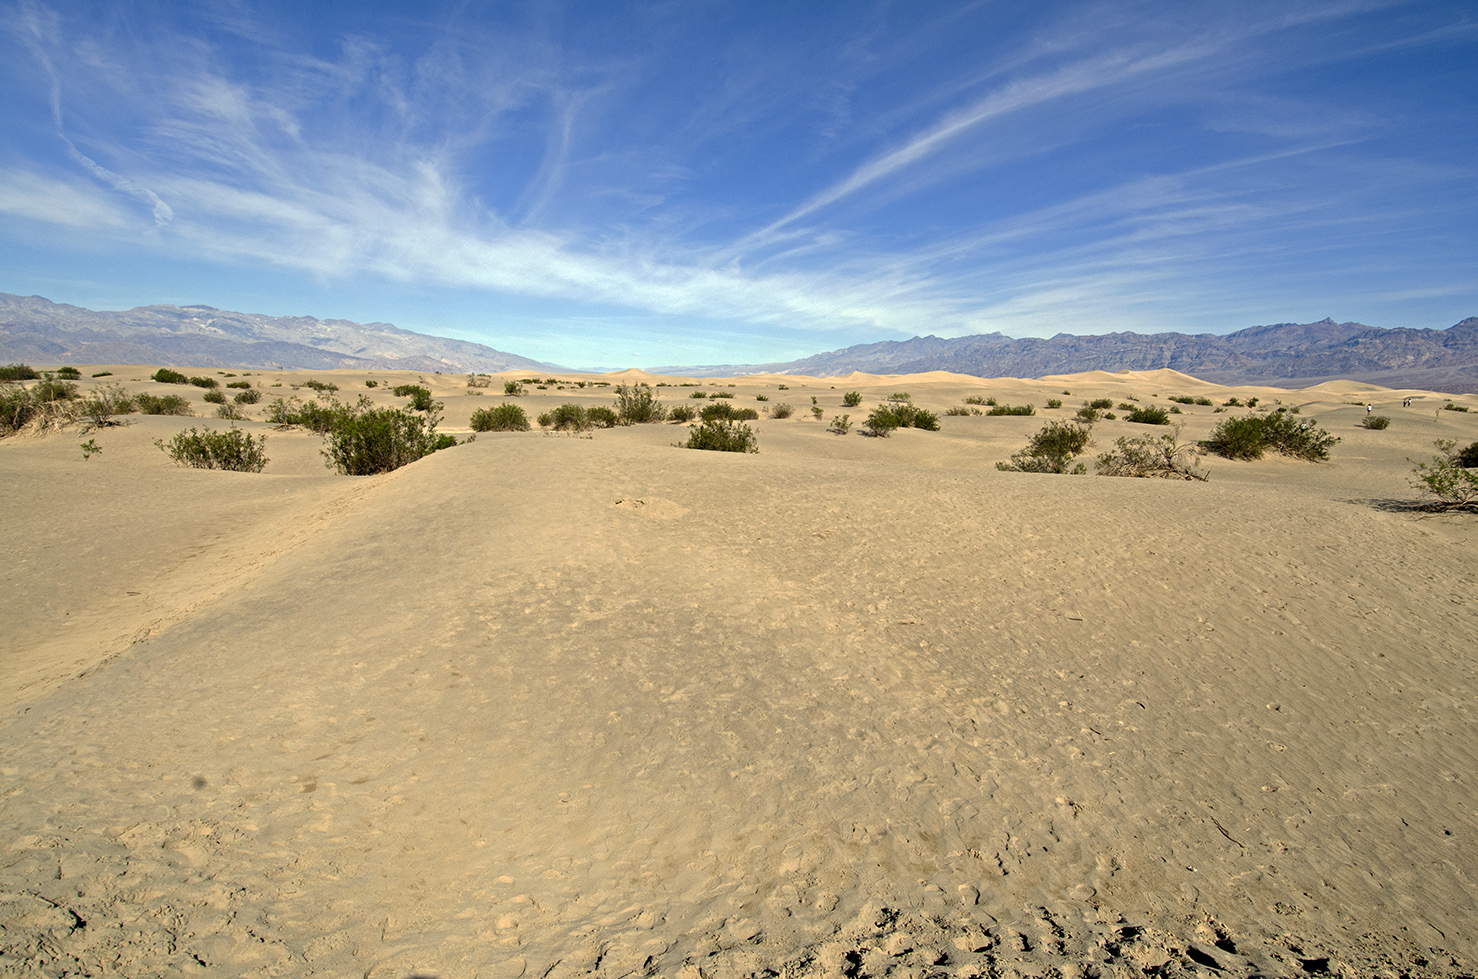 Sand dunes: hotter than they look. And this looks hot.